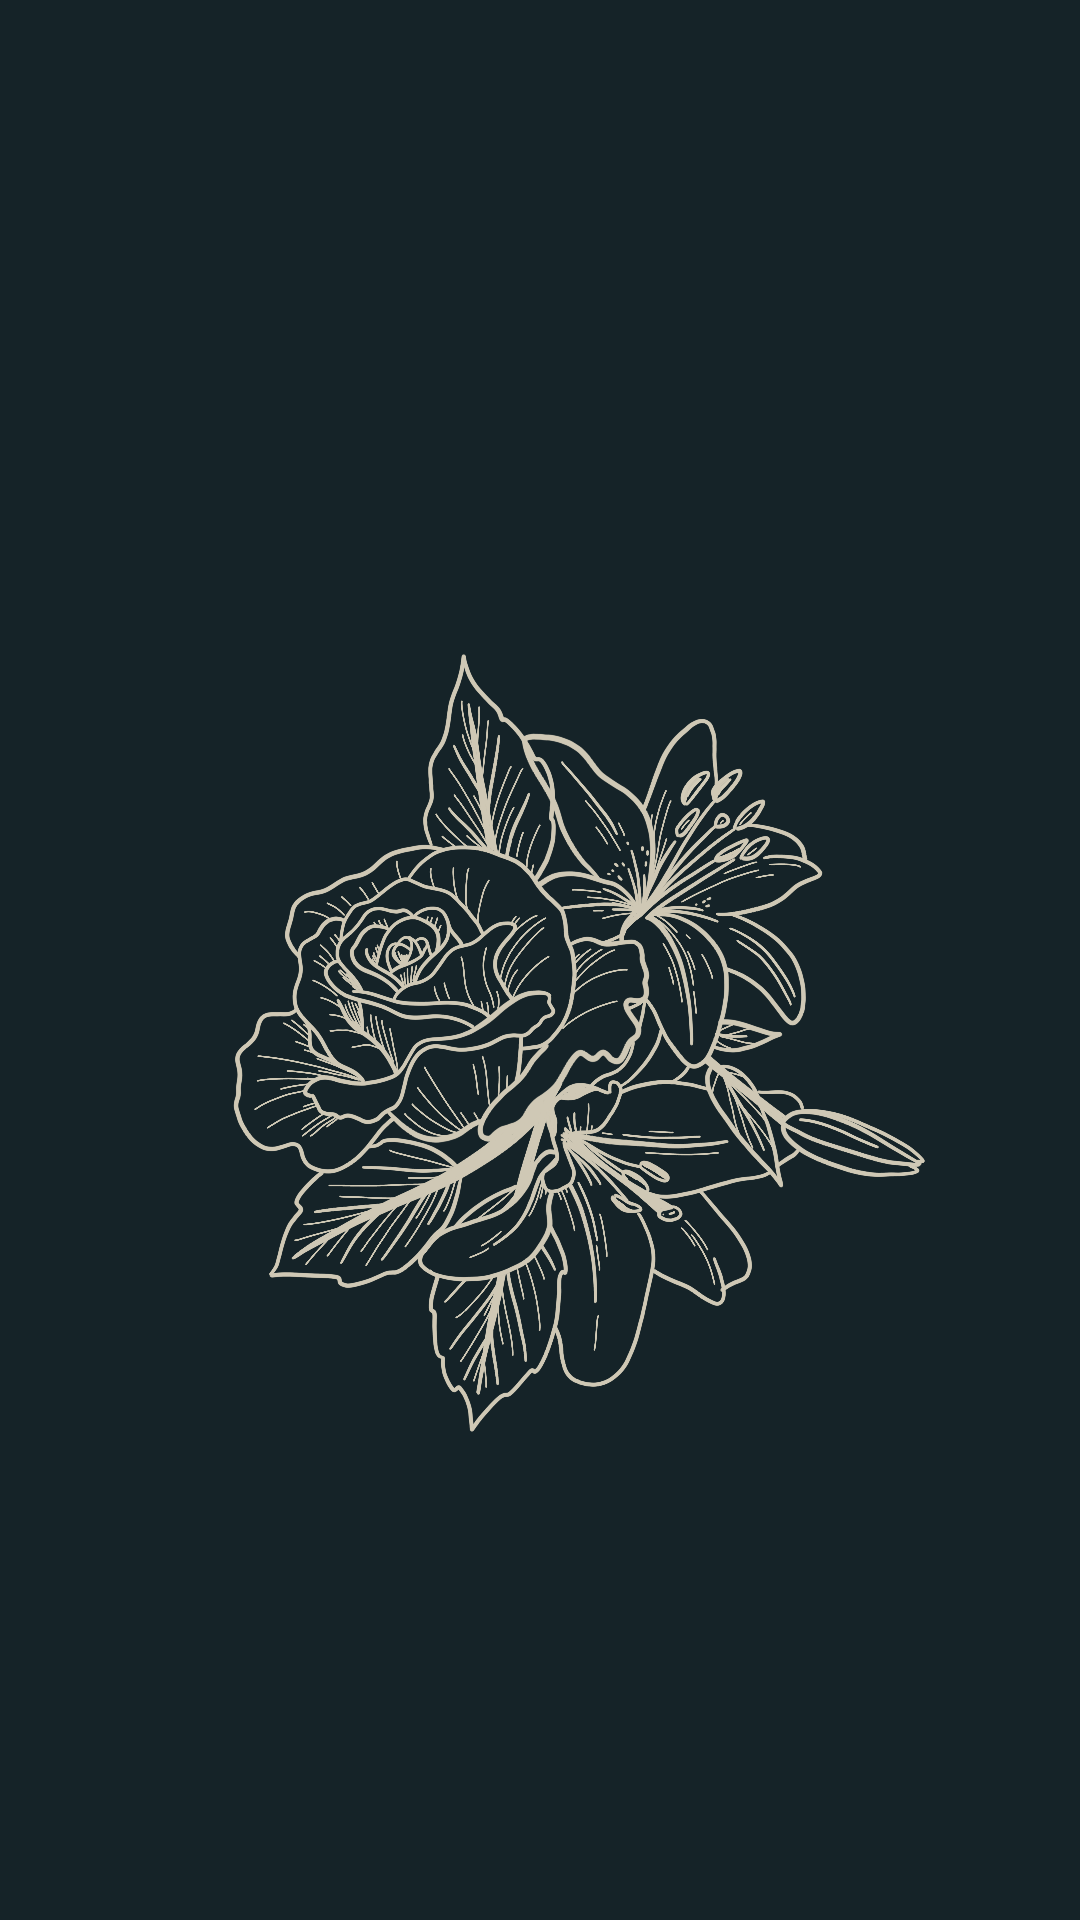 Tattoo Design Inspiration Line Arbeit Blumen Rose Pfingstrose Taglilien Laub Monoline In 2020 Floral Illustrations Trendy Tattoos Aesthetic Iphone Wallpaper